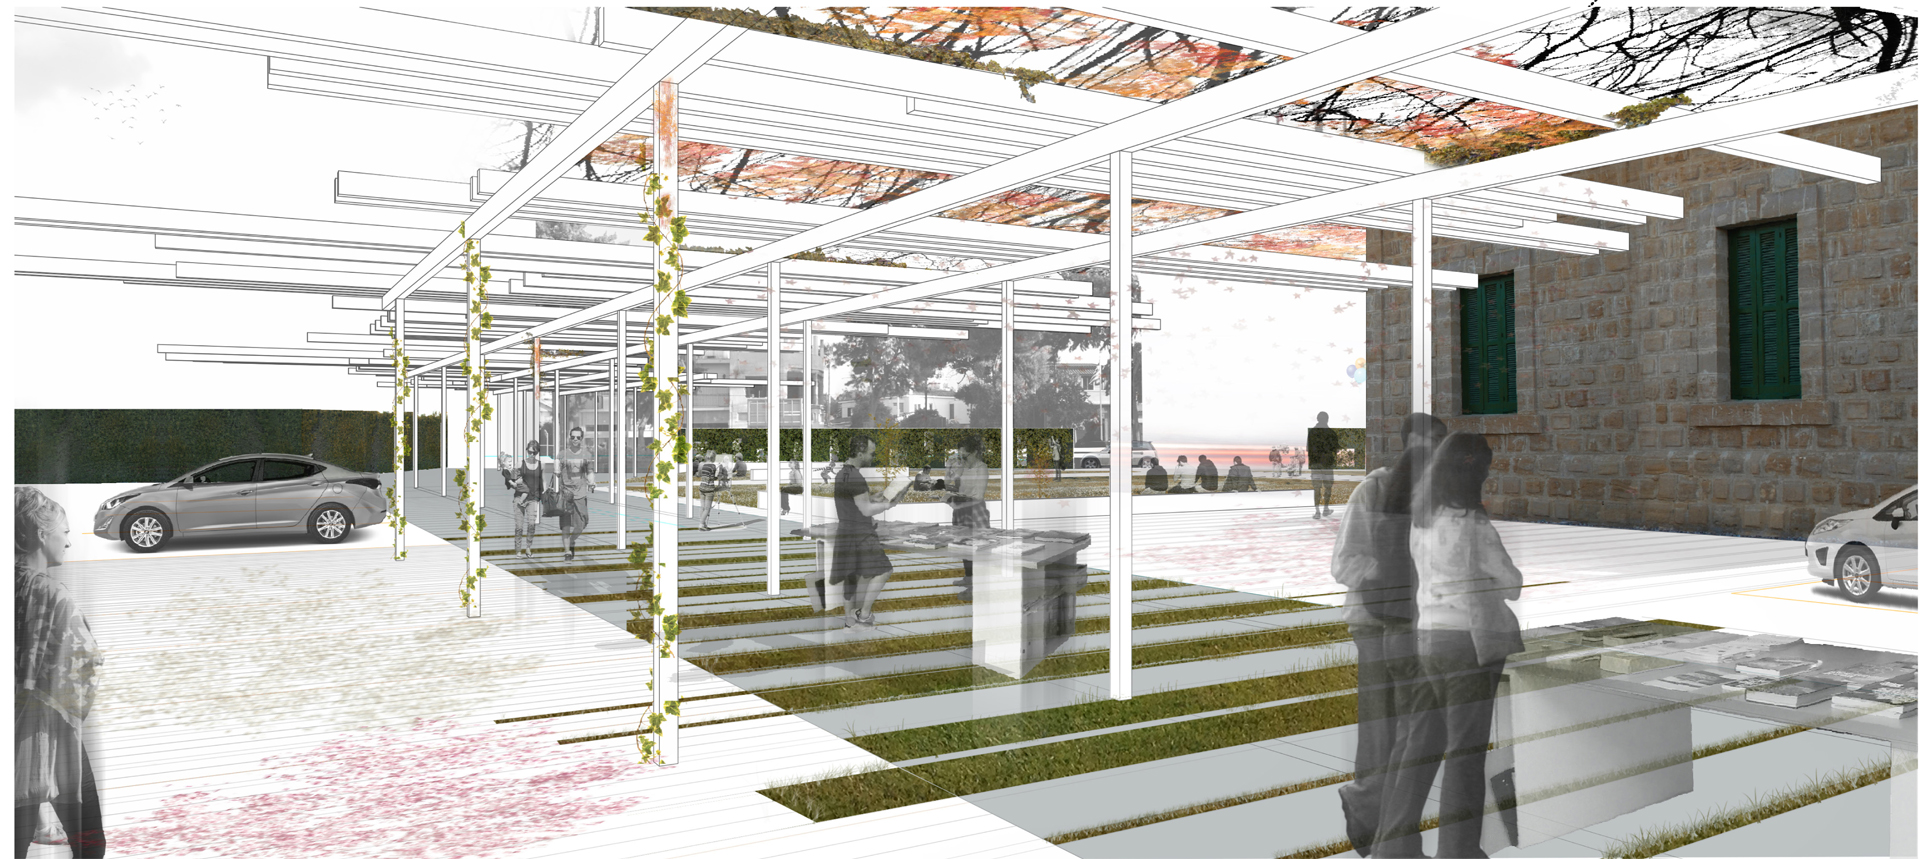 5. strovolos library canopy 3d.jpg